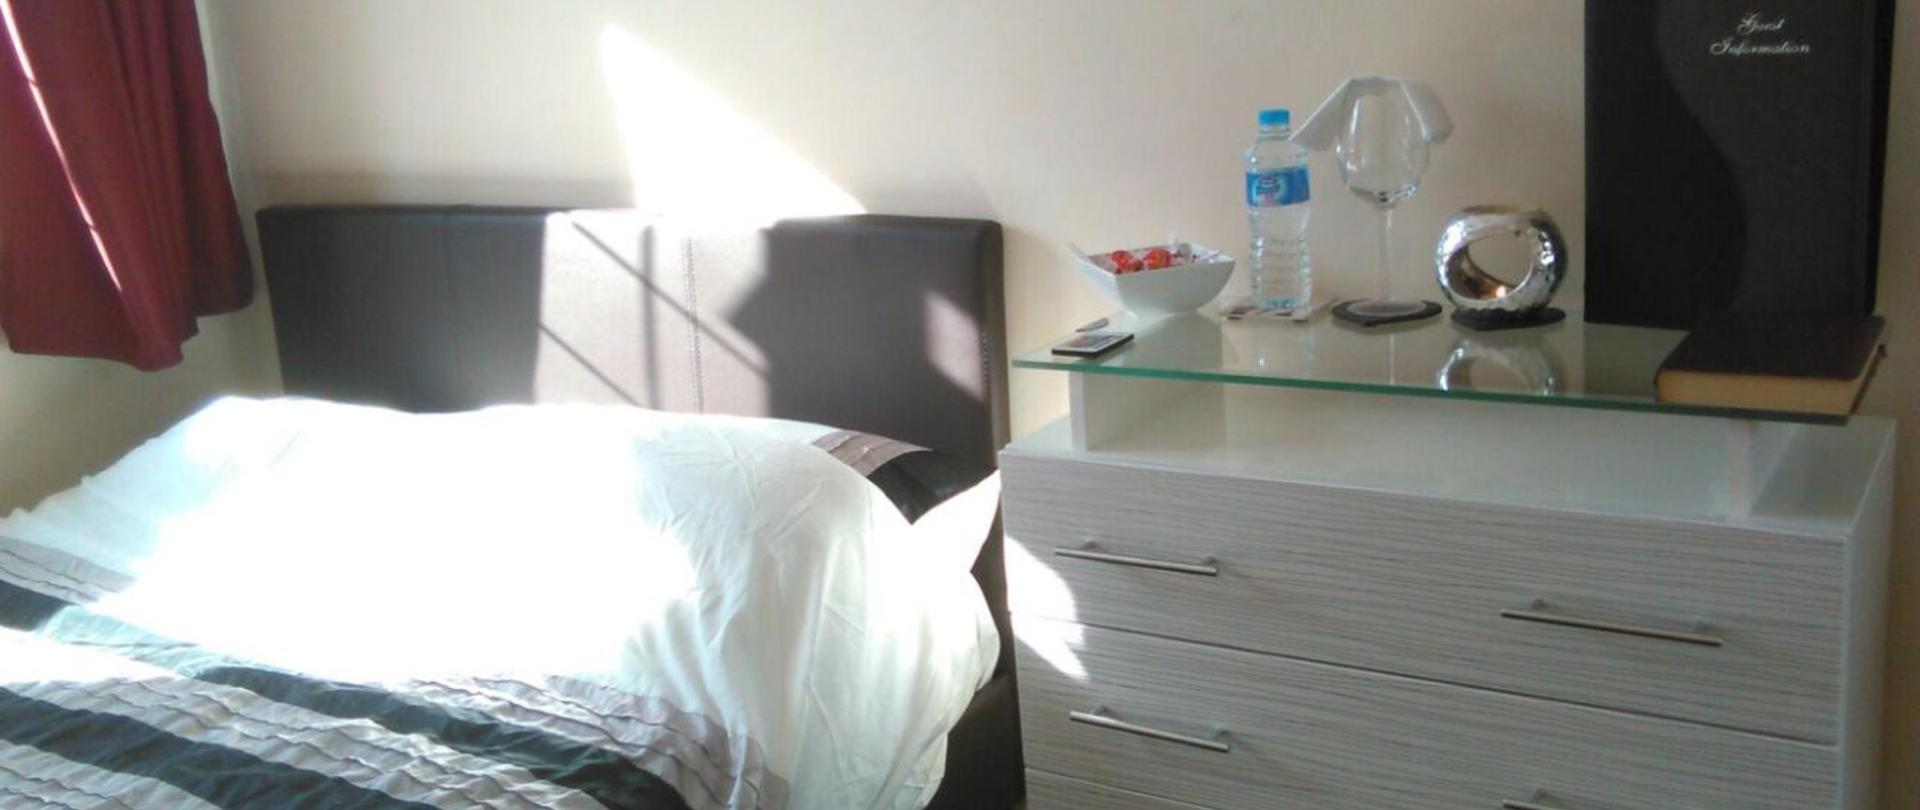 Double bed daylight 1.JPG